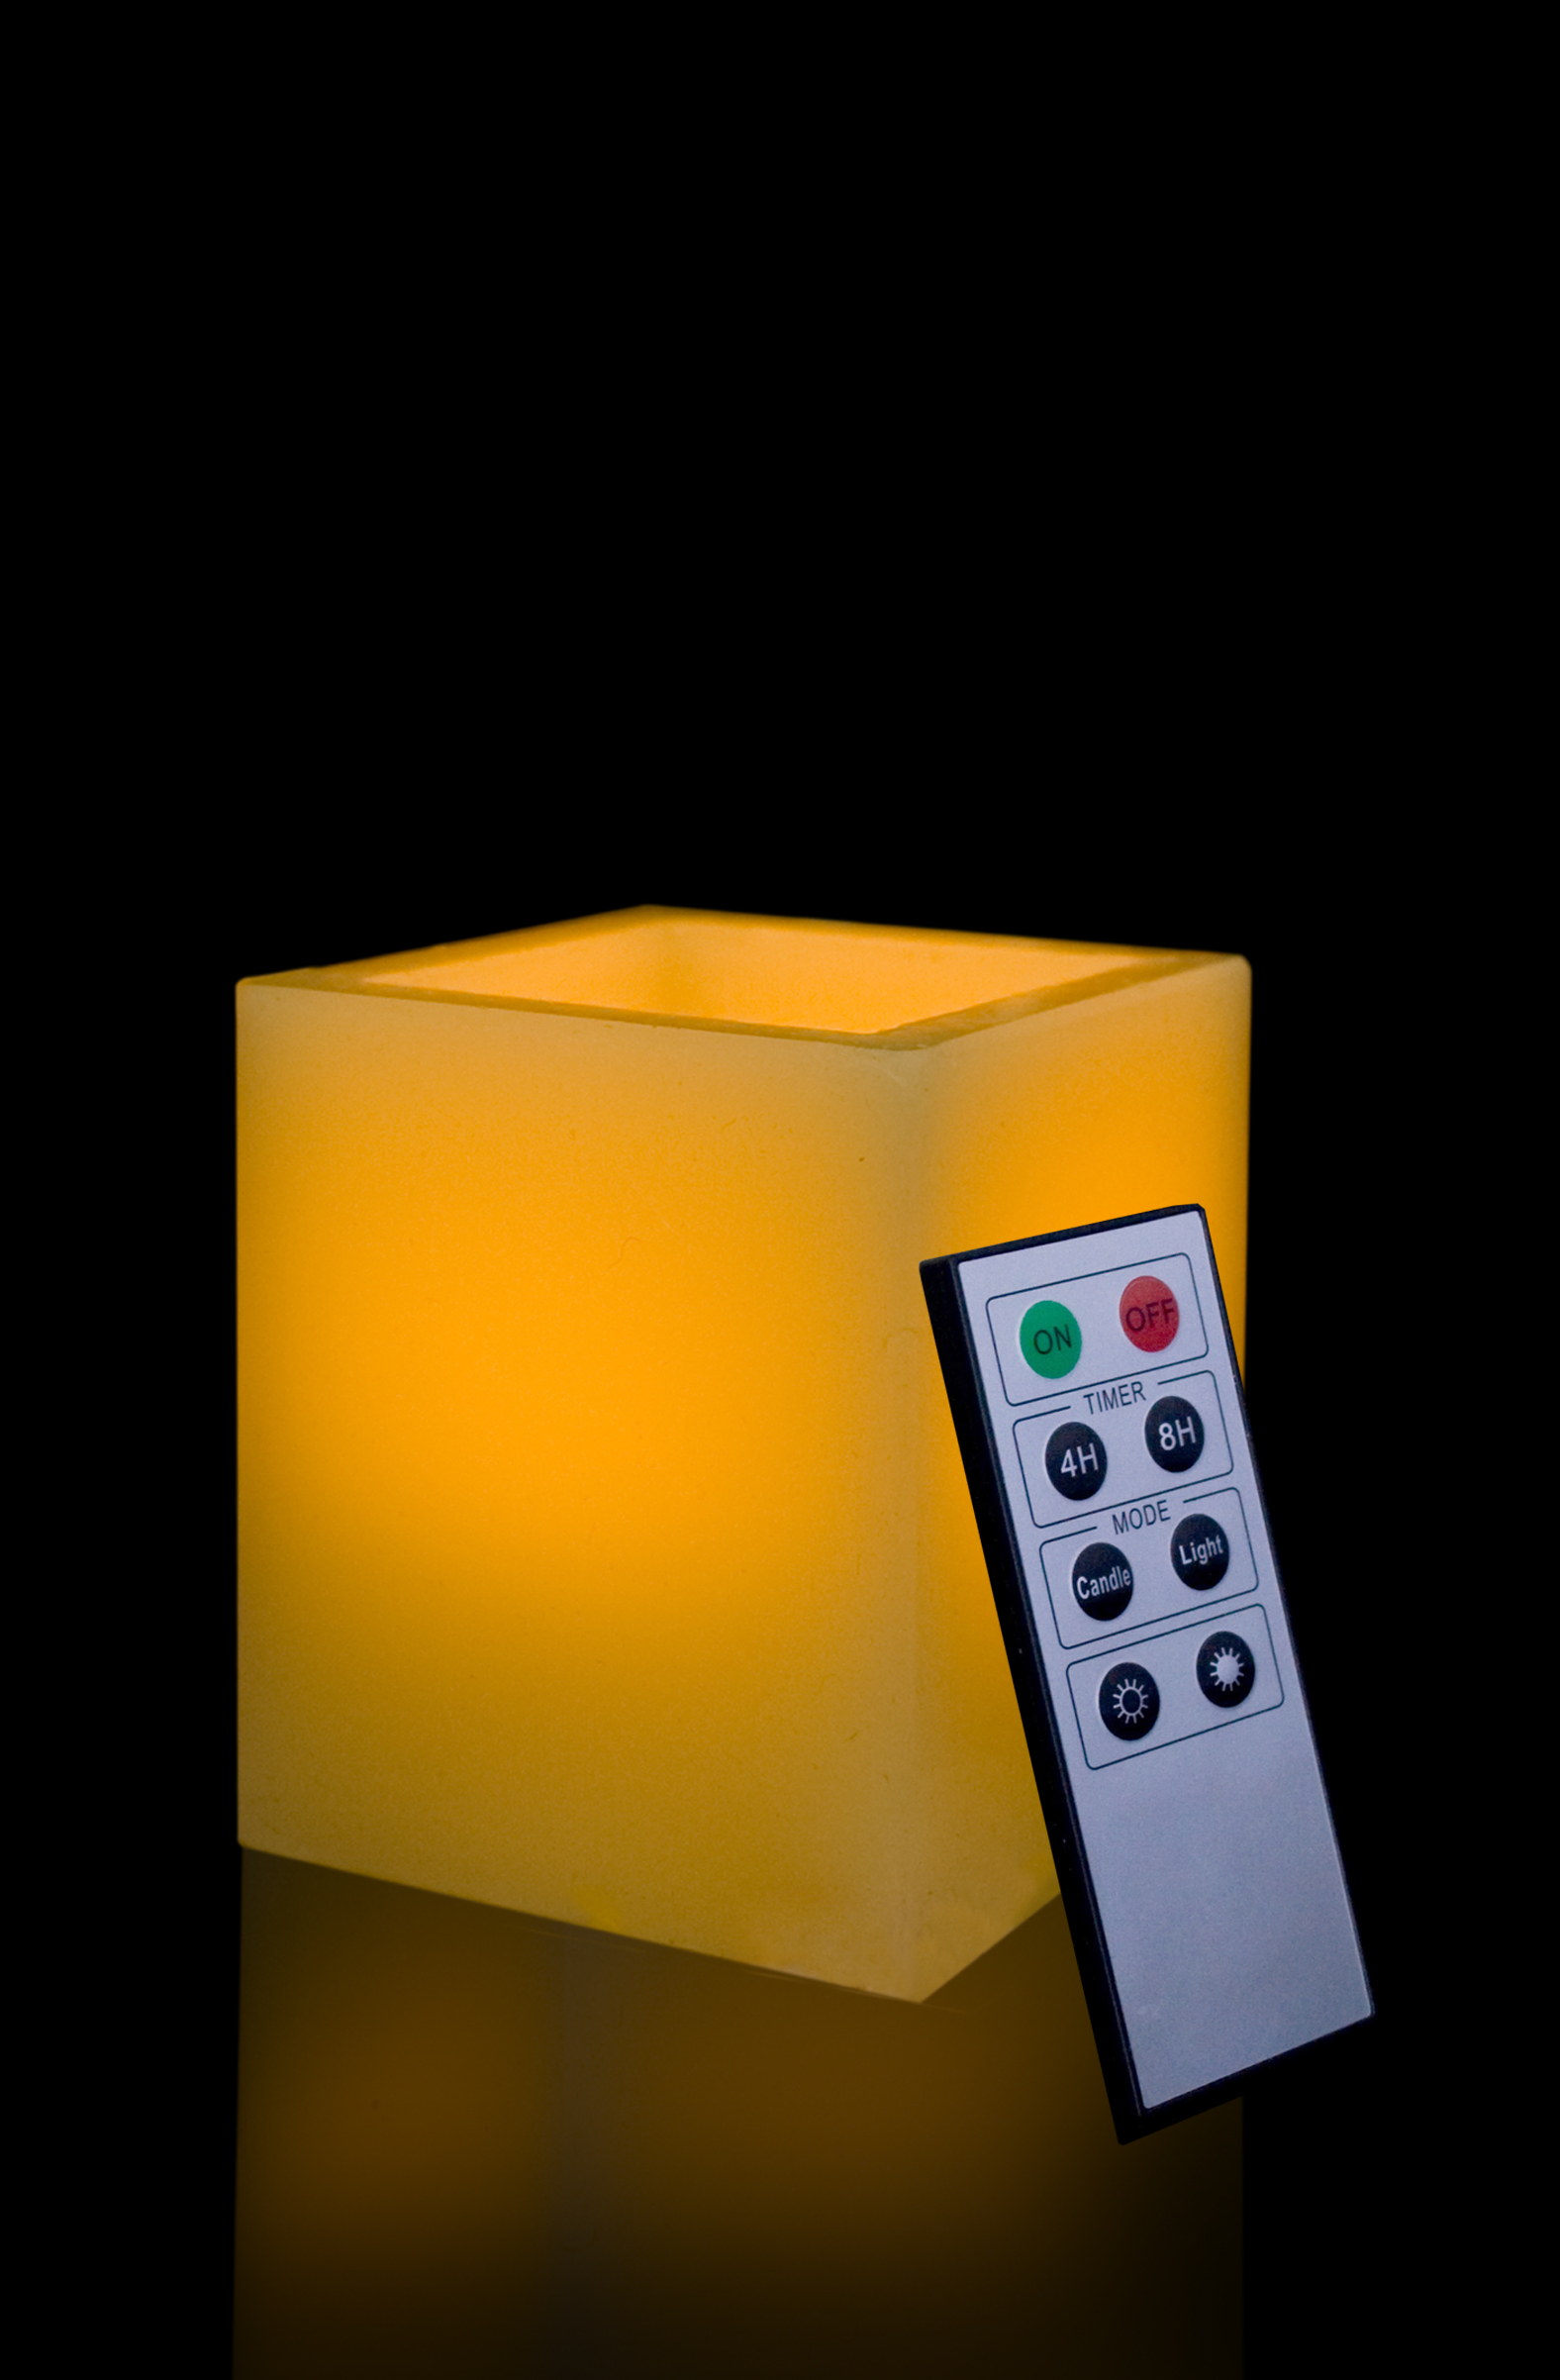 4 Inch Flameless Remote Control Square Pillar Candle - Yellow